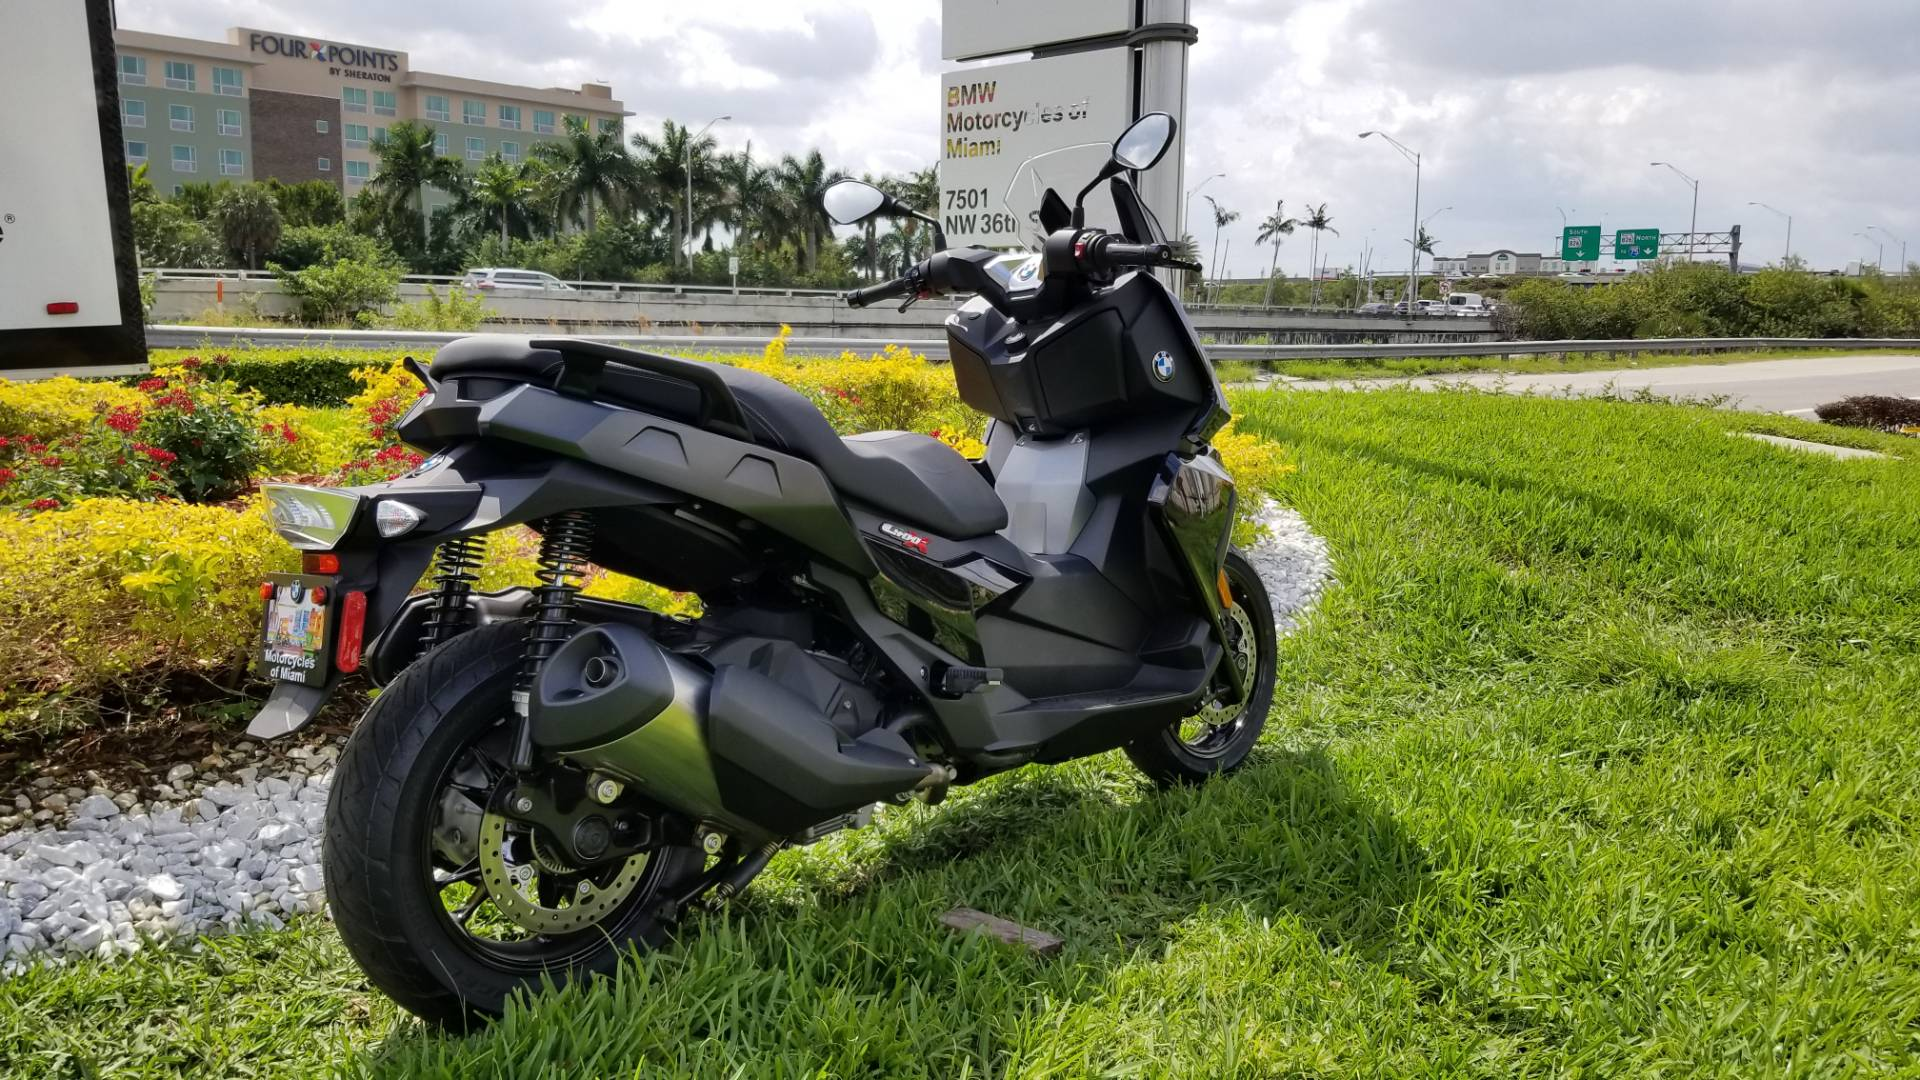 New 2019 BMW C 400 X for sale, BMW C 400X for sale, BMW Scooter, new BMW Scooter, C400X, BMW Motorcycles of Miami, Motorcycles of Miami, Motorcycles Miami, New Motorcycles, Used Motorcycles, pre-owned. #BMWMotorcyclesOfMiami #MotorcyclesOfMiami #MotorcyclesMiami - Photo 15